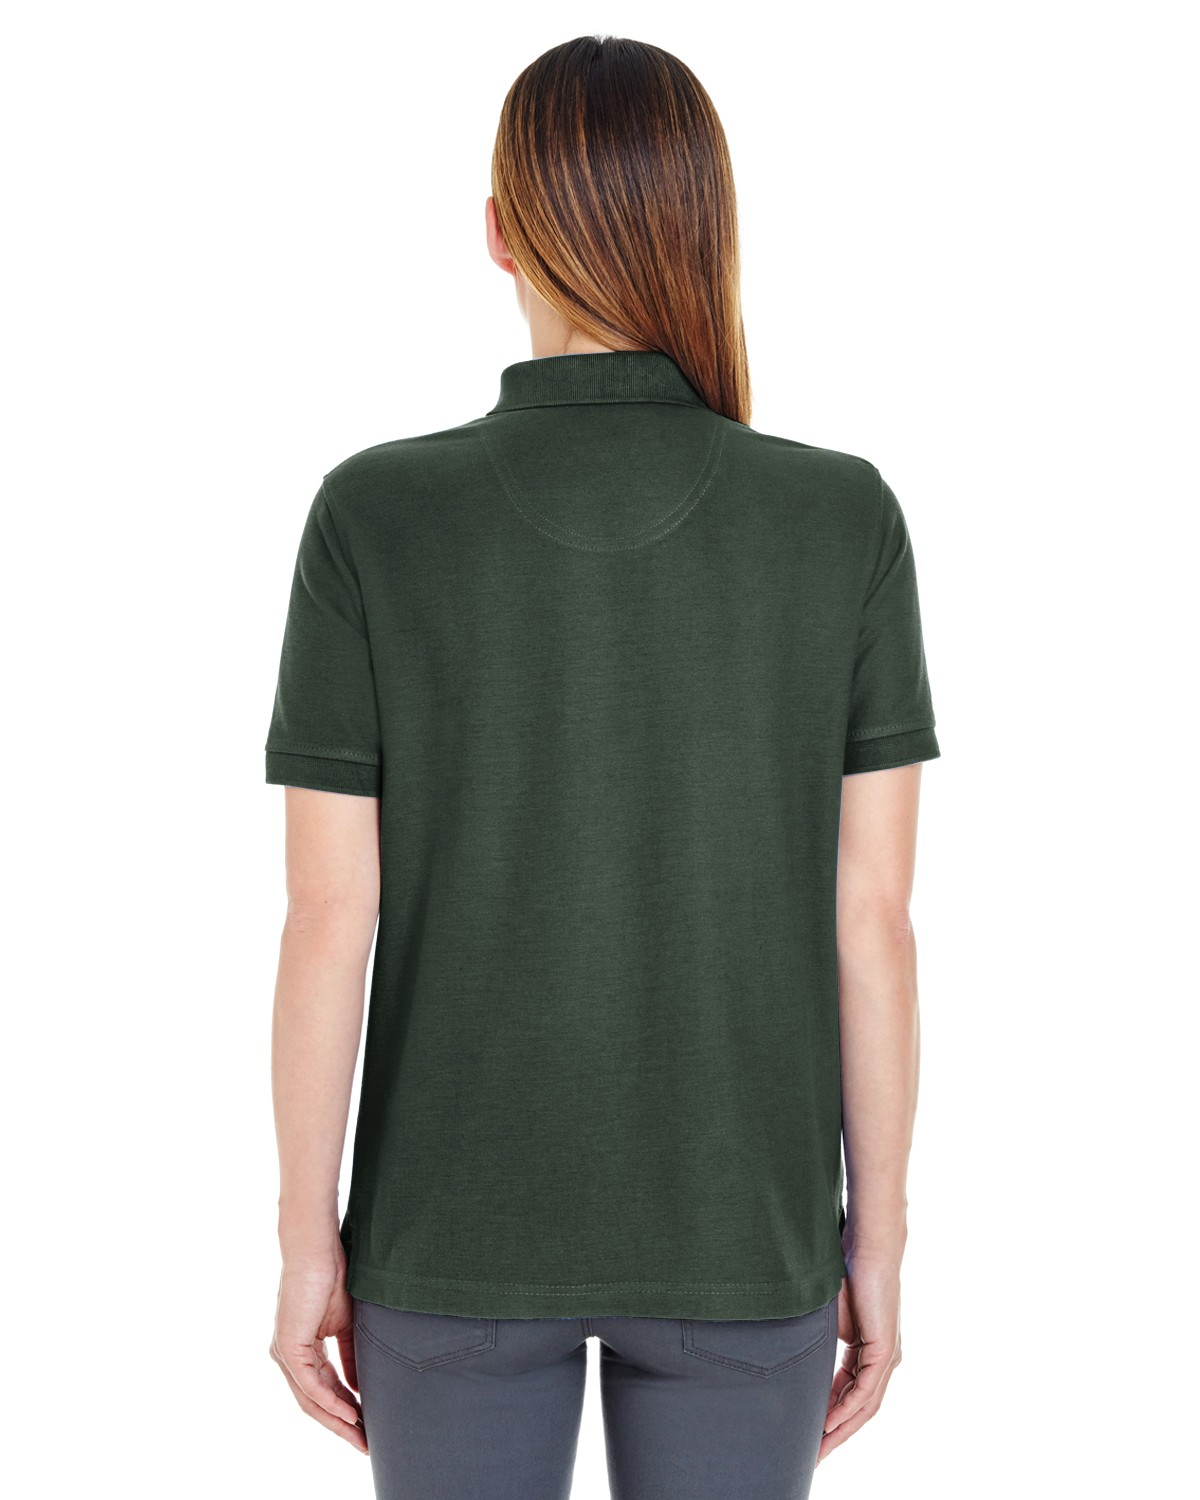 8541 UltraClub FOREST GREEN